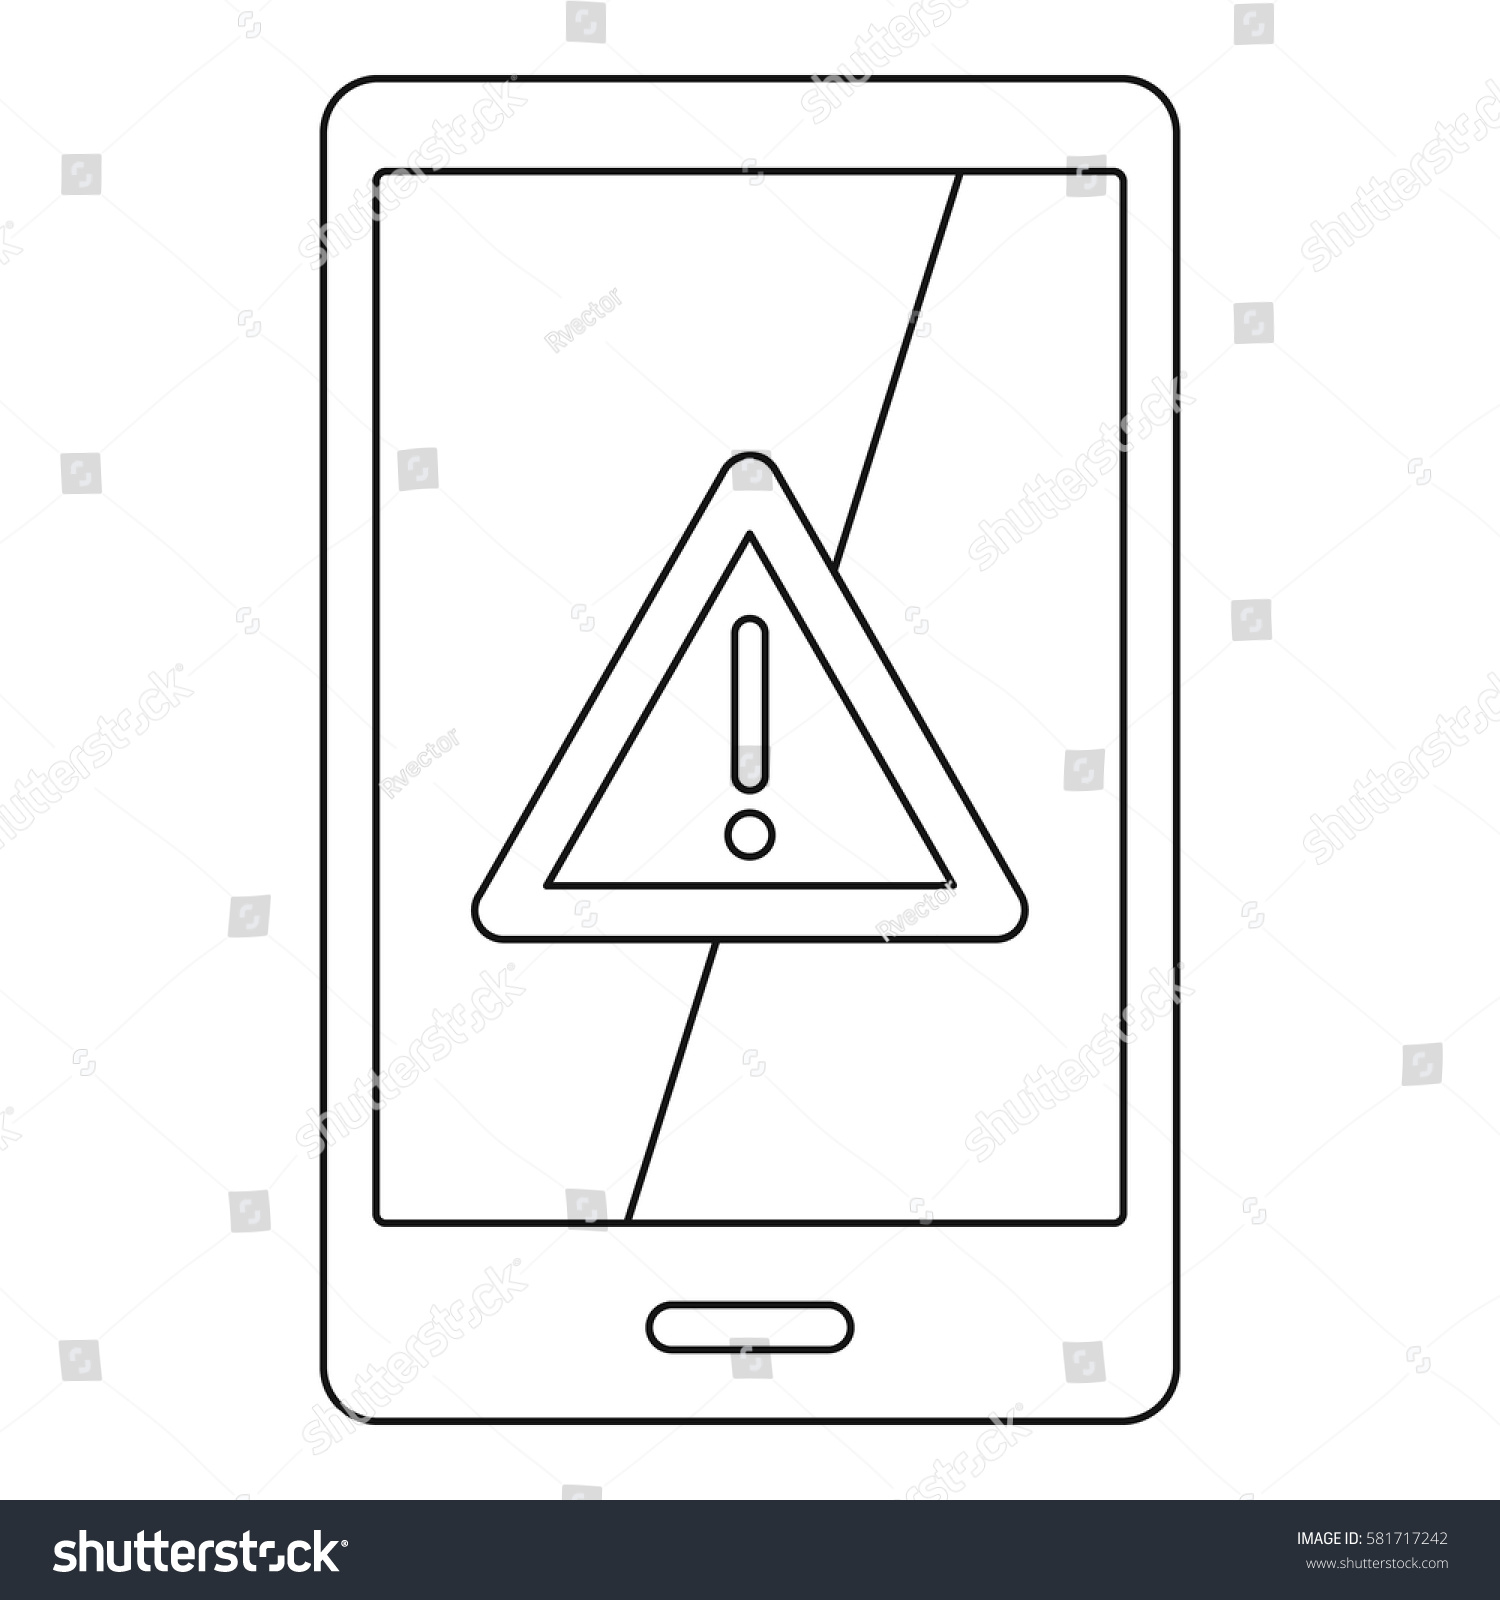 Not Working Phone Icon Outline Illustration Stock Vector 581717242 - Shutterstock